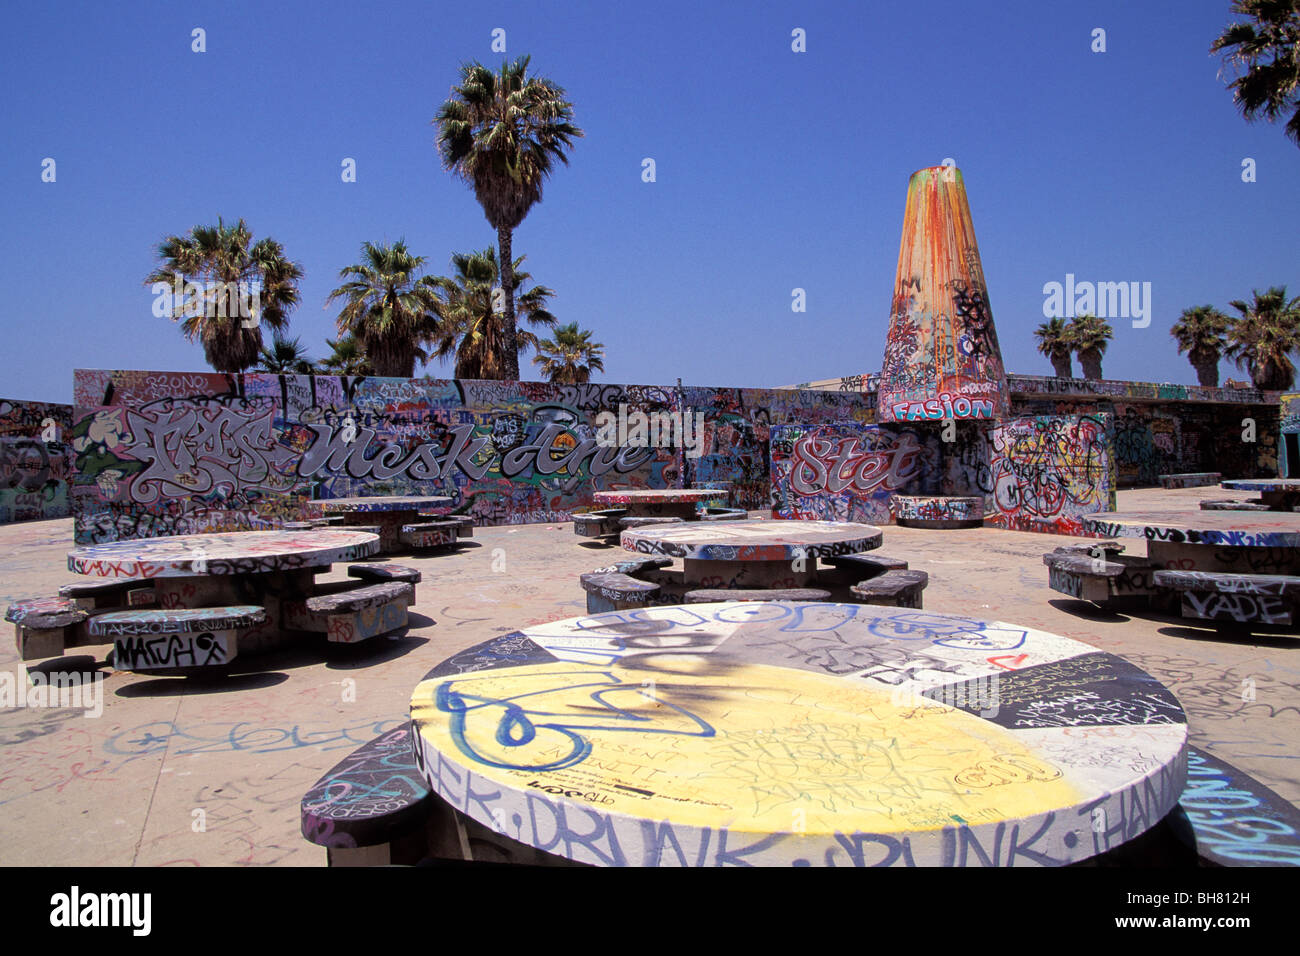 Gang murals venice beach los angeles california stock for California mural